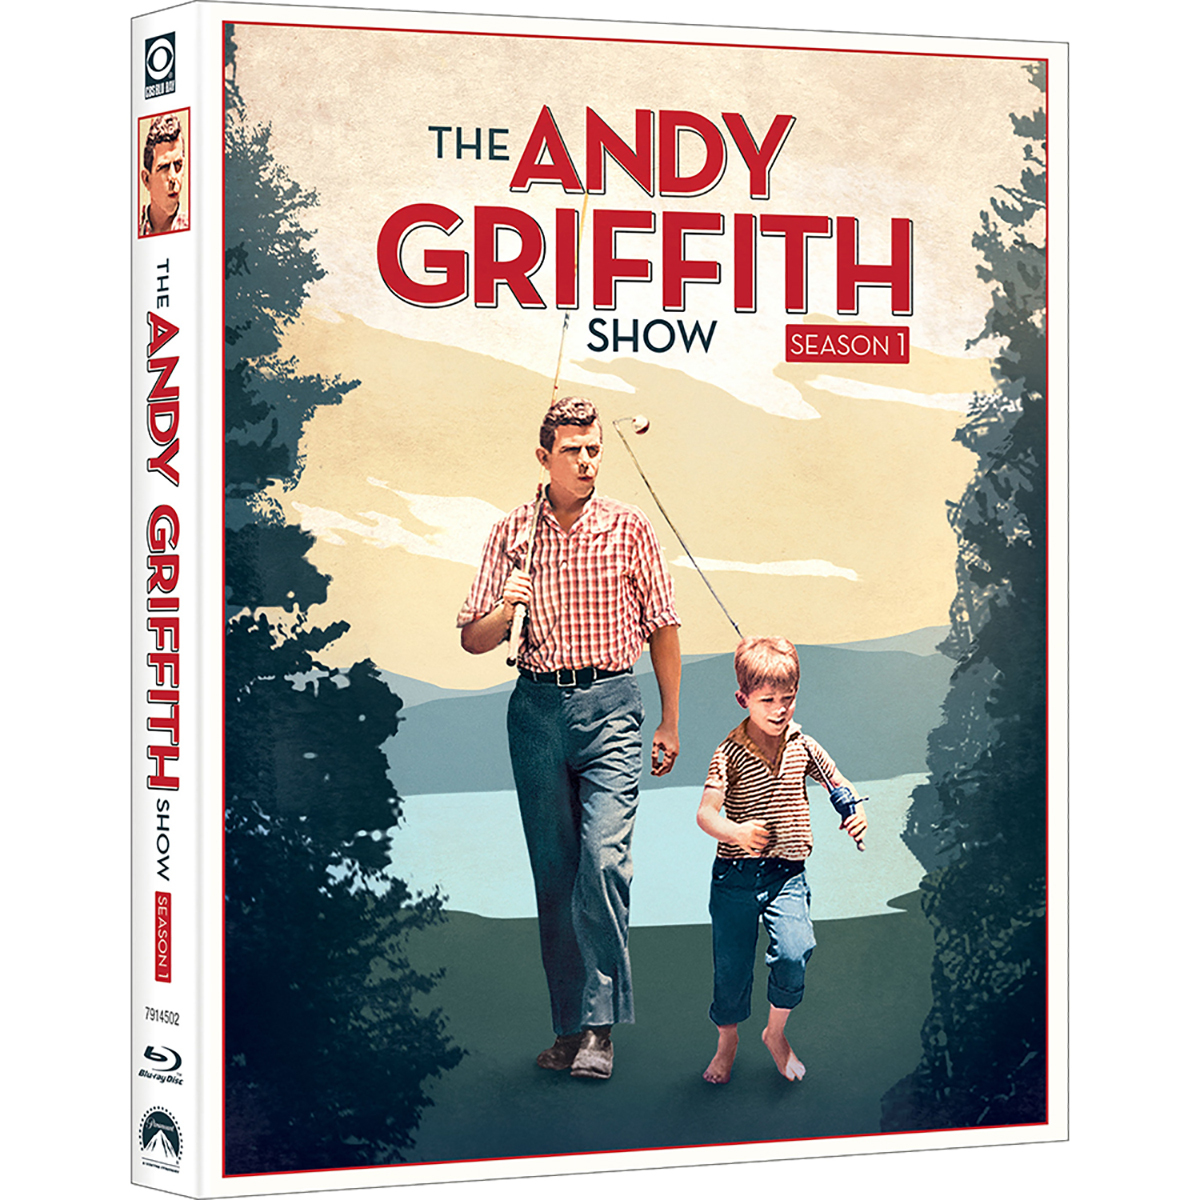 The Andy Griffith Show: Season 1 Blu-ray -  DVDs & Videos 6445-496785